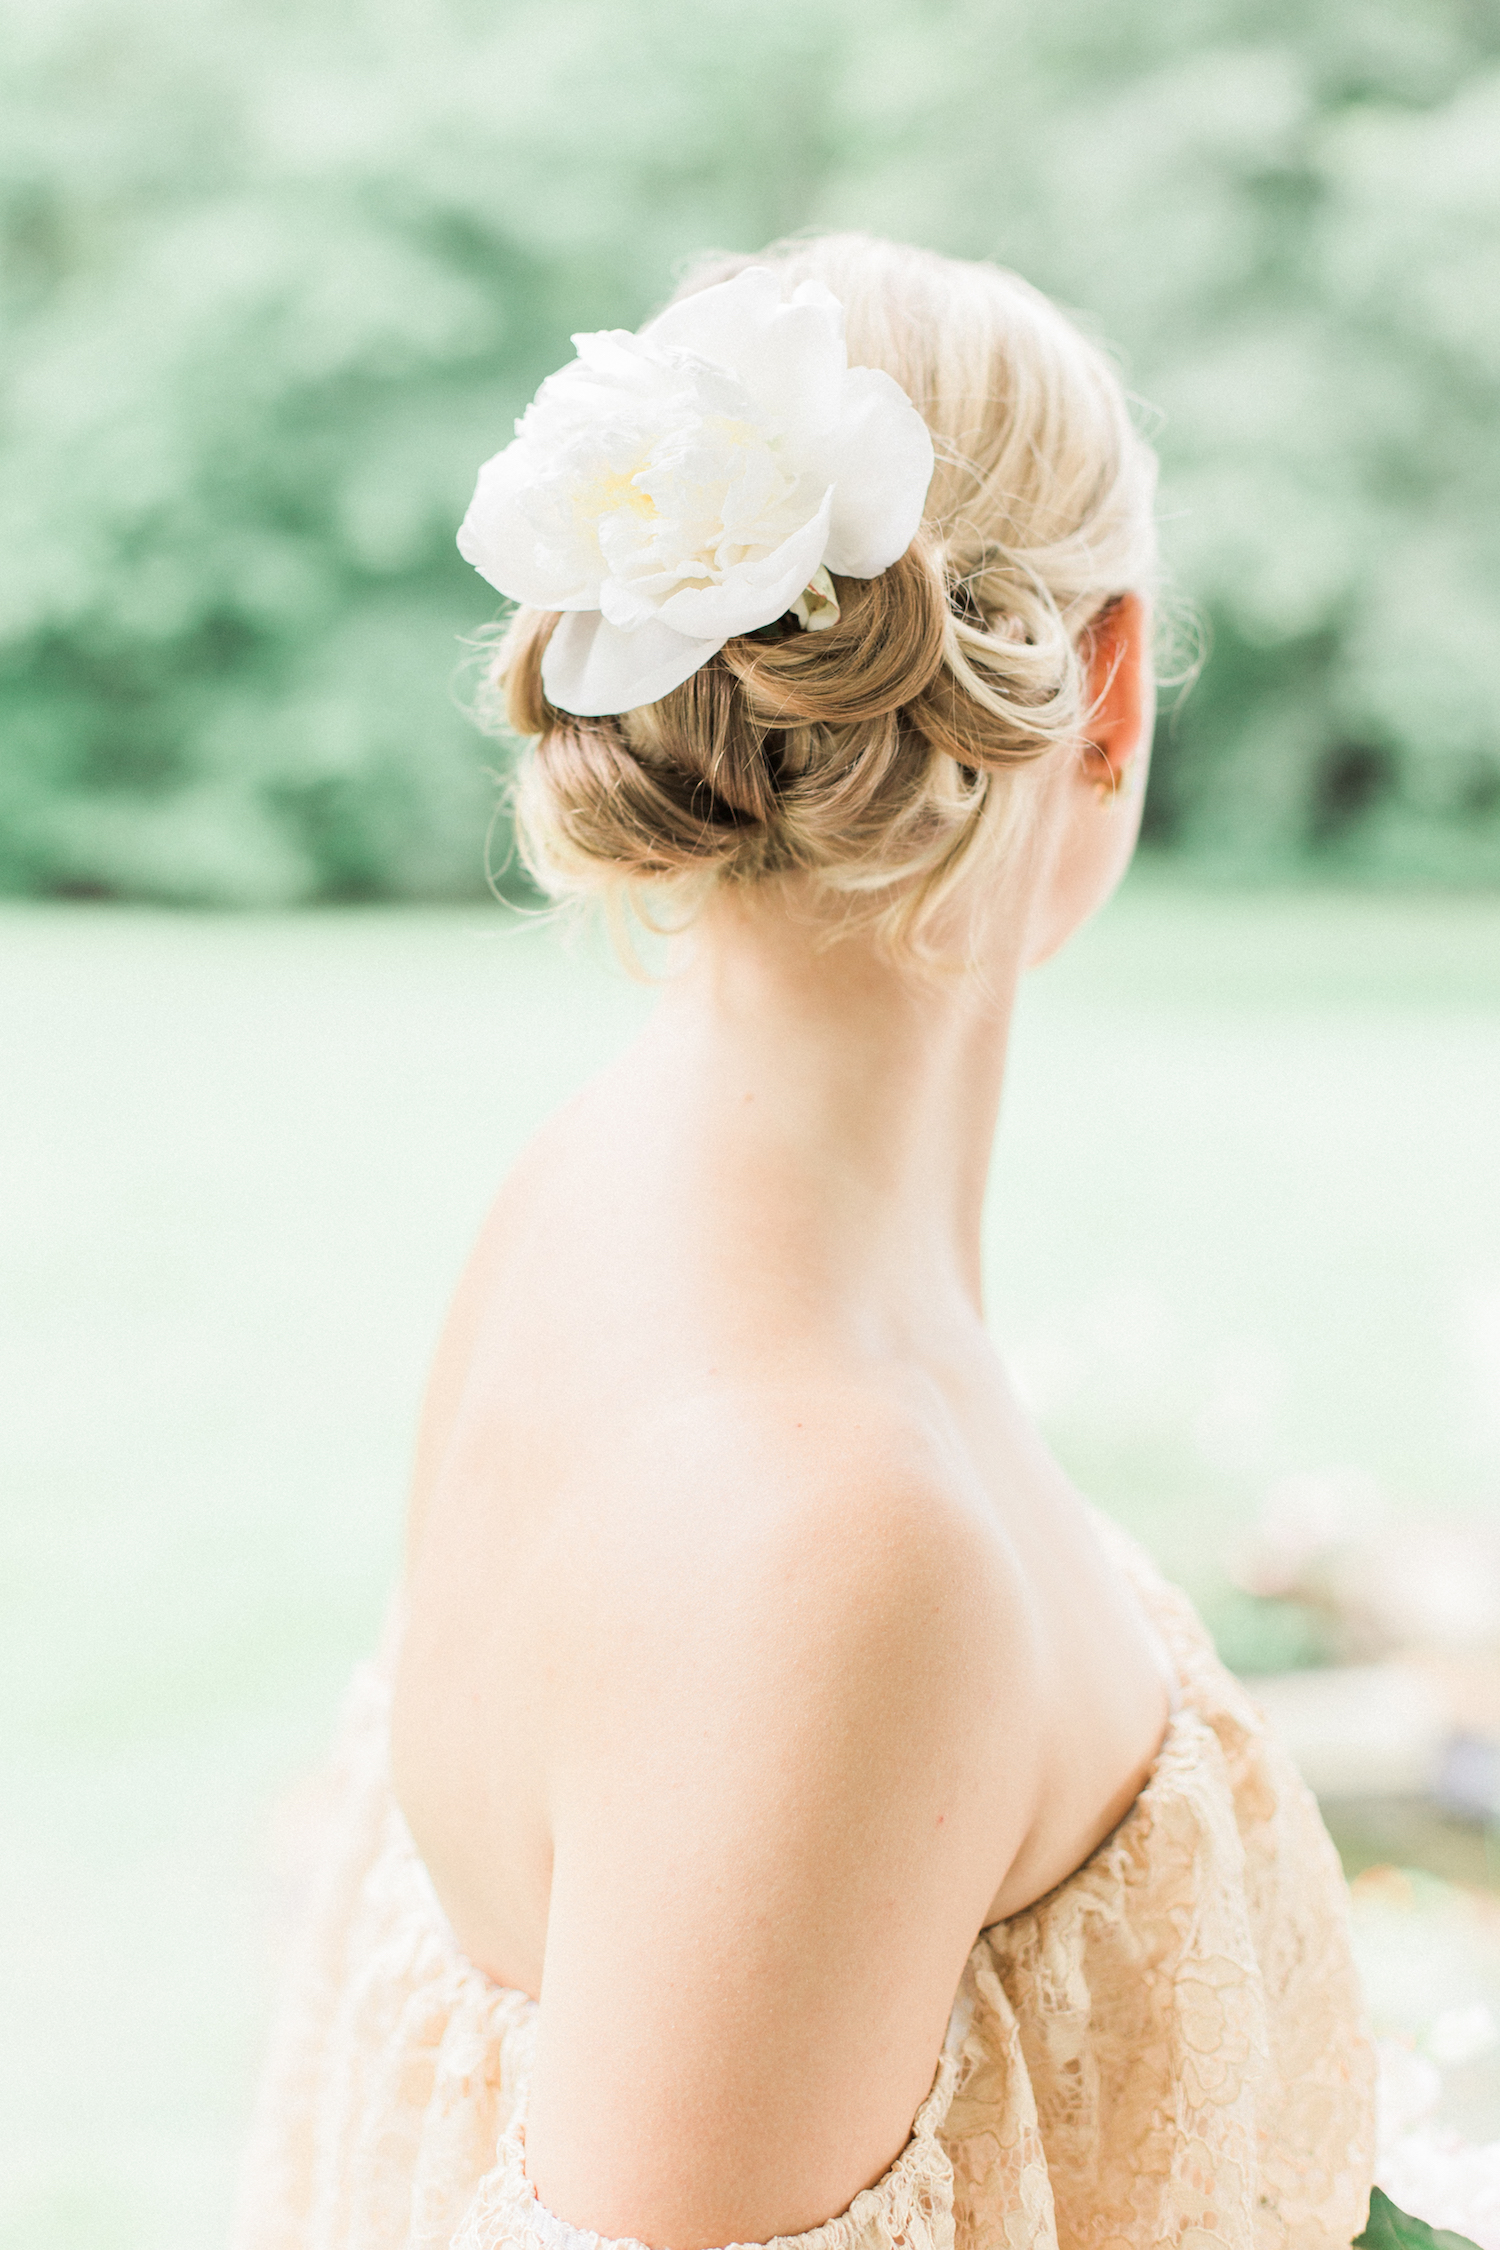 Wedding hairstyle and undo with big floral accent and accessories. Flowers in hair for wedding day.